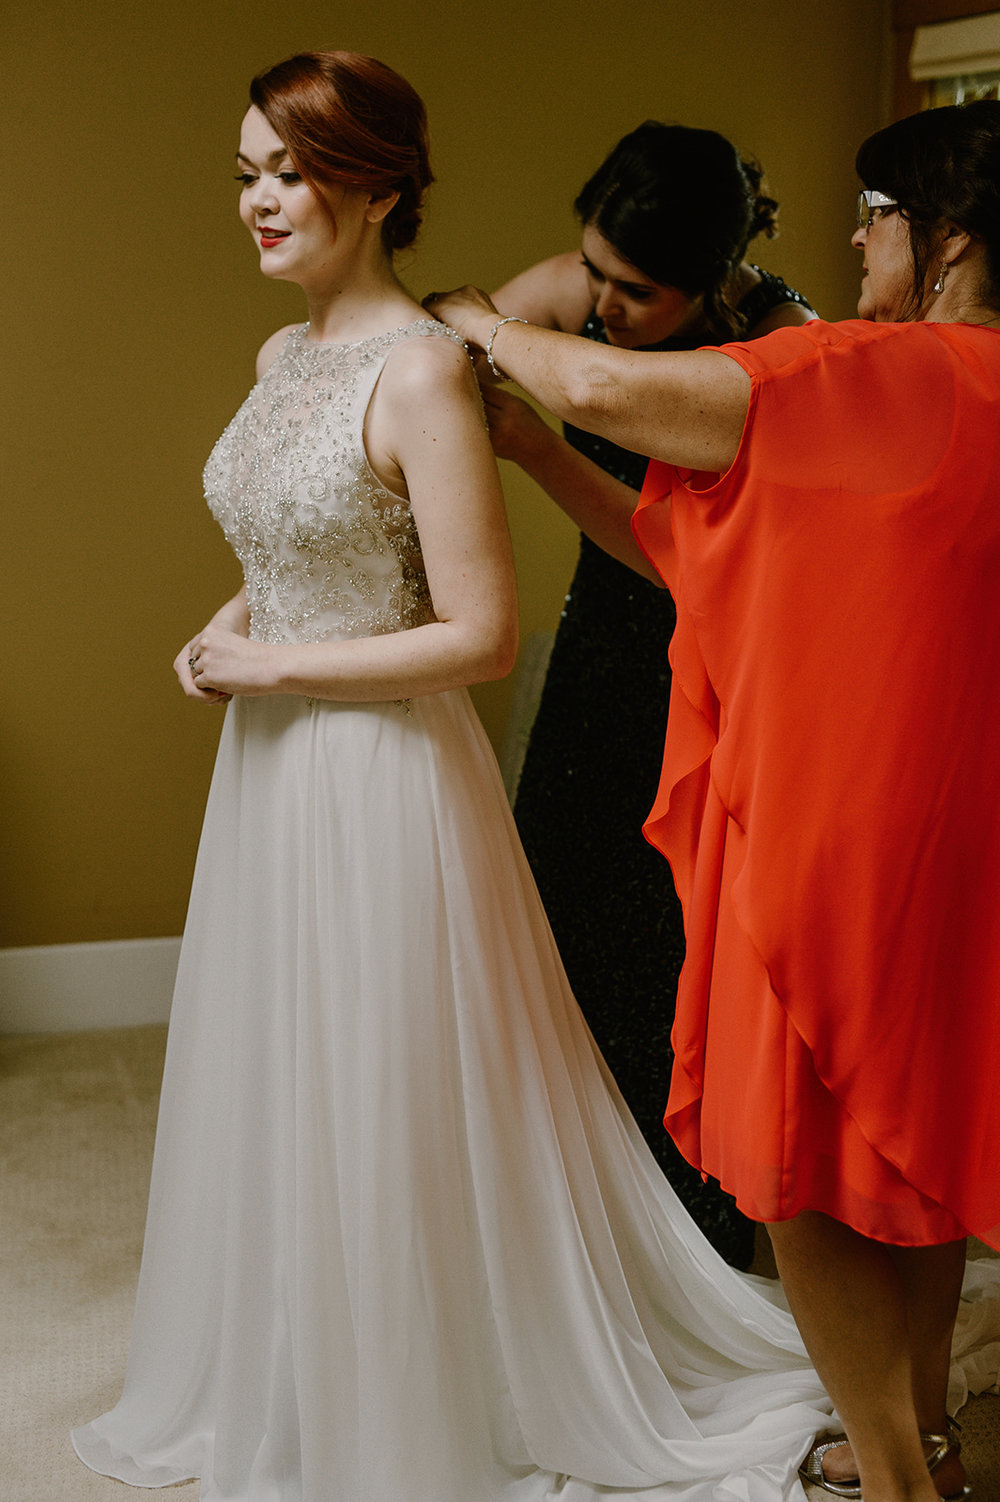 Becca-Christian-GettingReady-Carly-Bish-Photography-25.jpg